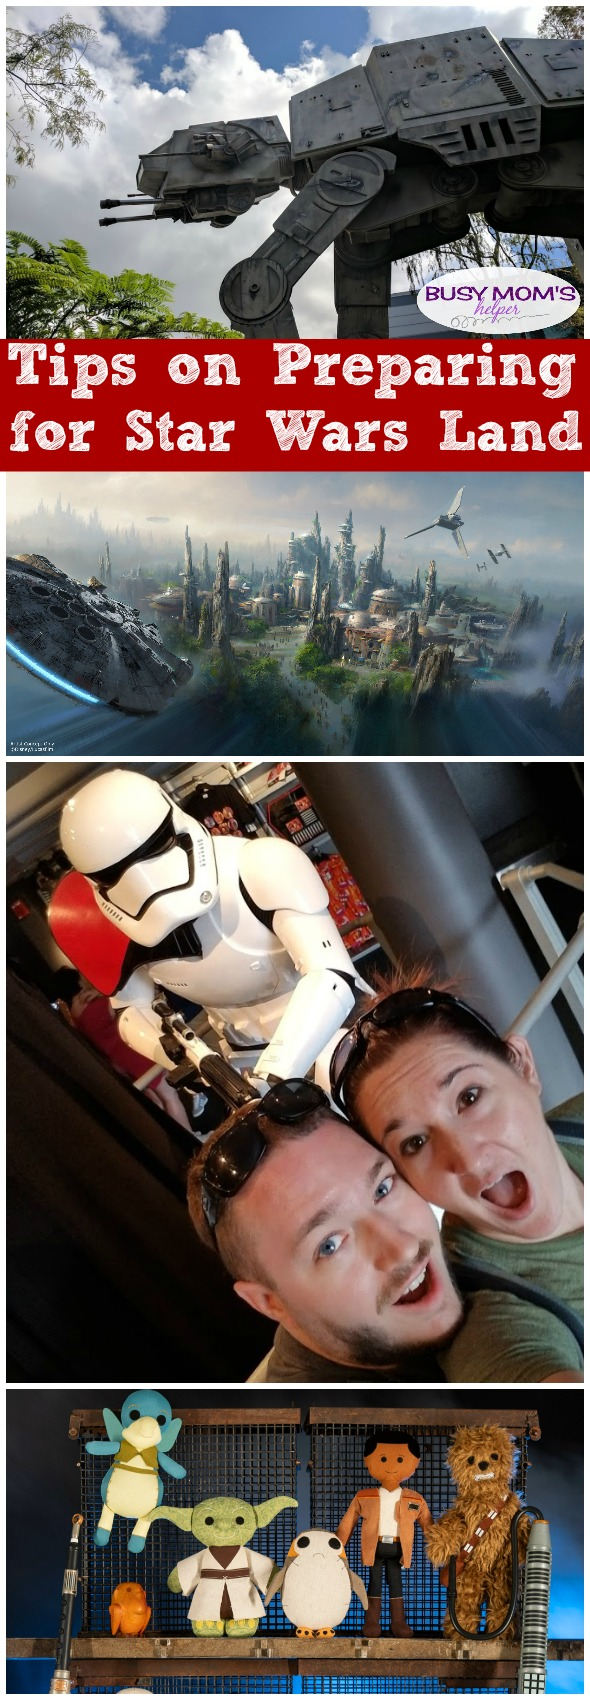 Tips for Preparing for Star Wars Land #starwars #waltdisneyworld #disneyland #starwarsland #disneytrip #disneyparks #hollywoodstudios #familytravel